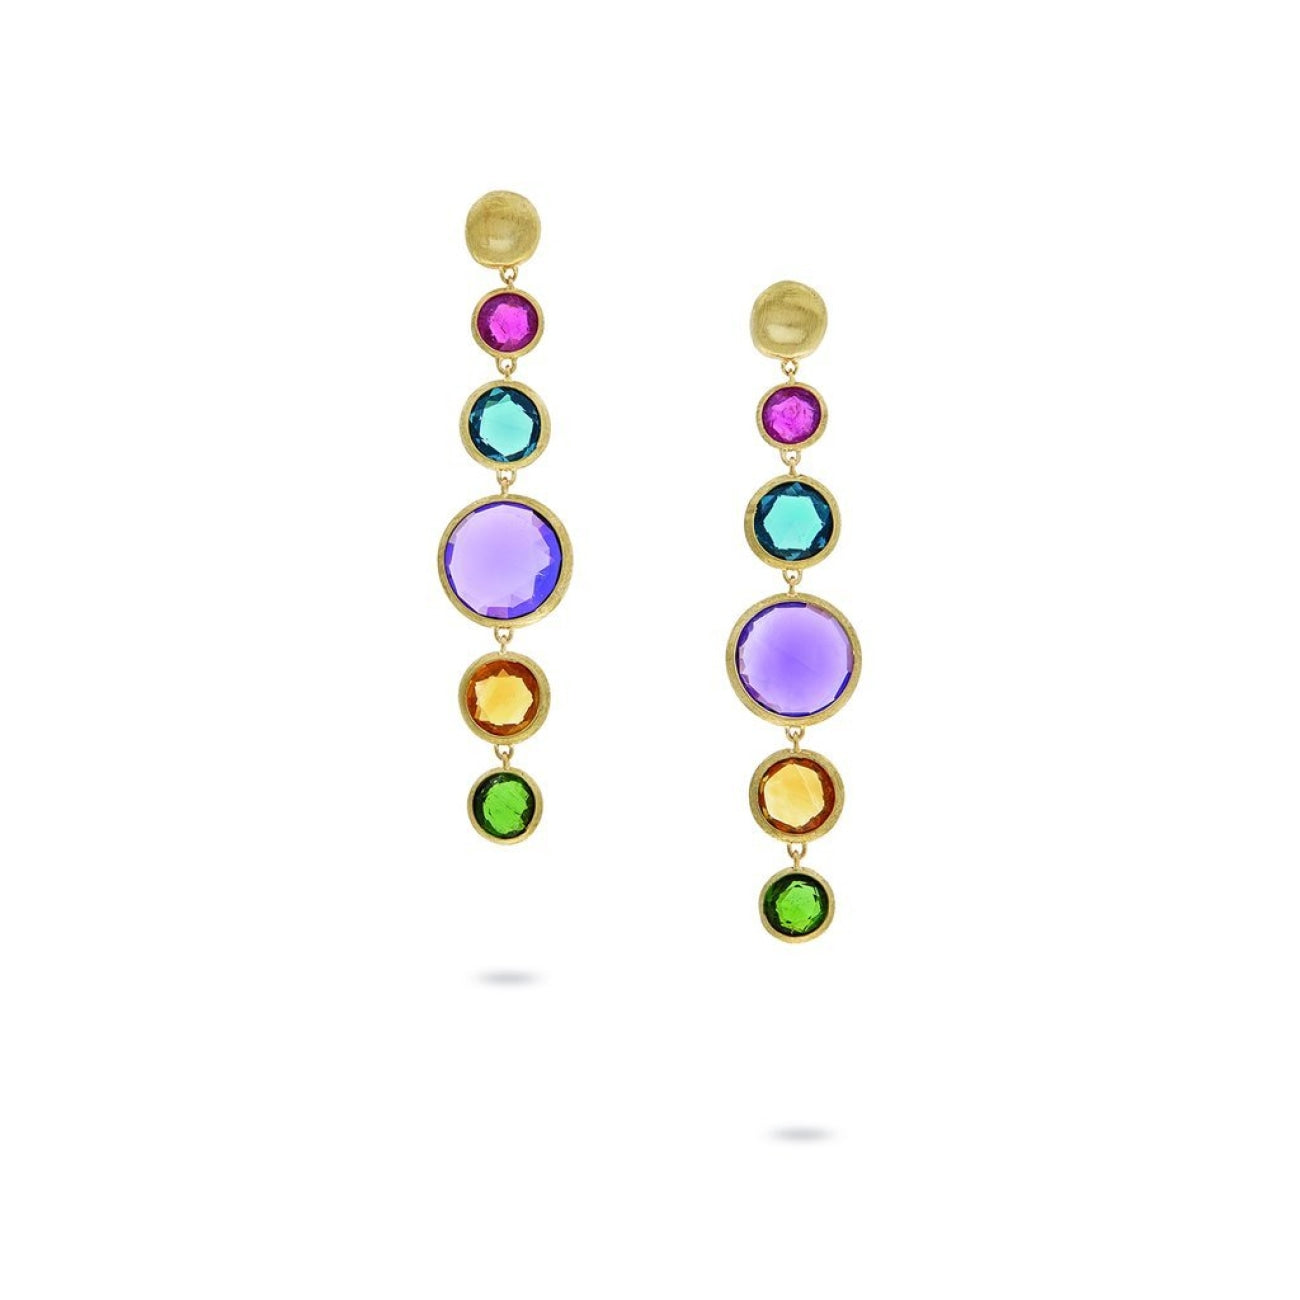 Marco Bicego Jewelry - 18K Yellow Gold with Bold Gemstone Drop Earrings | Manfredi Jewels